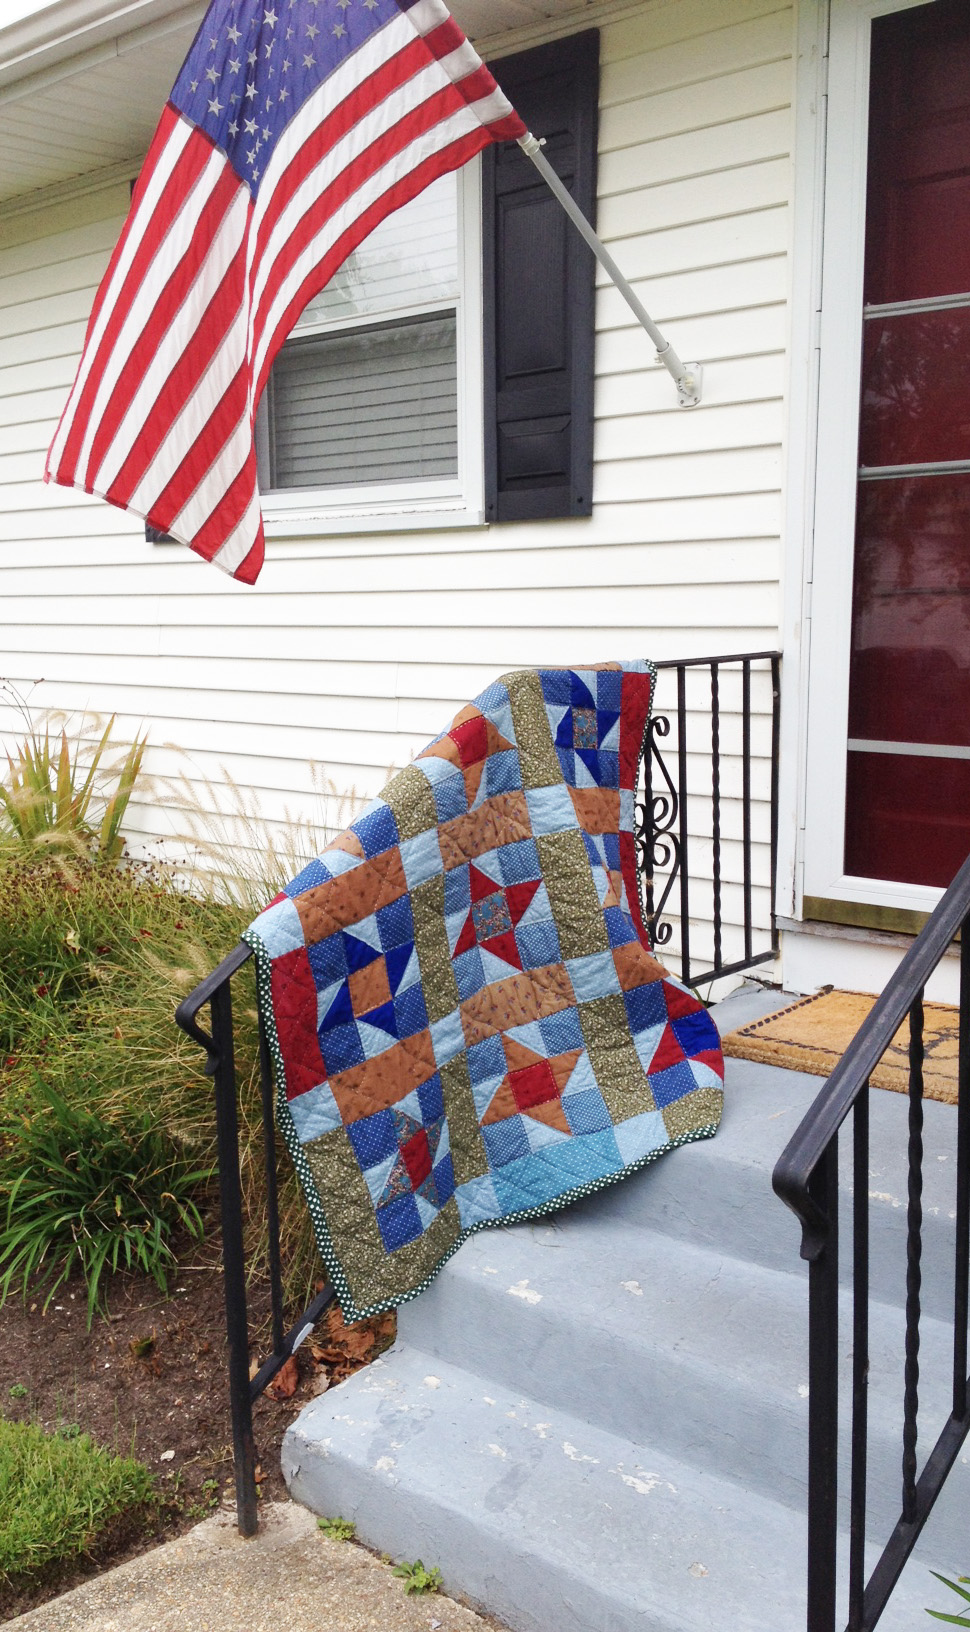 Finished quilt hanging out in Cape May, NJ.